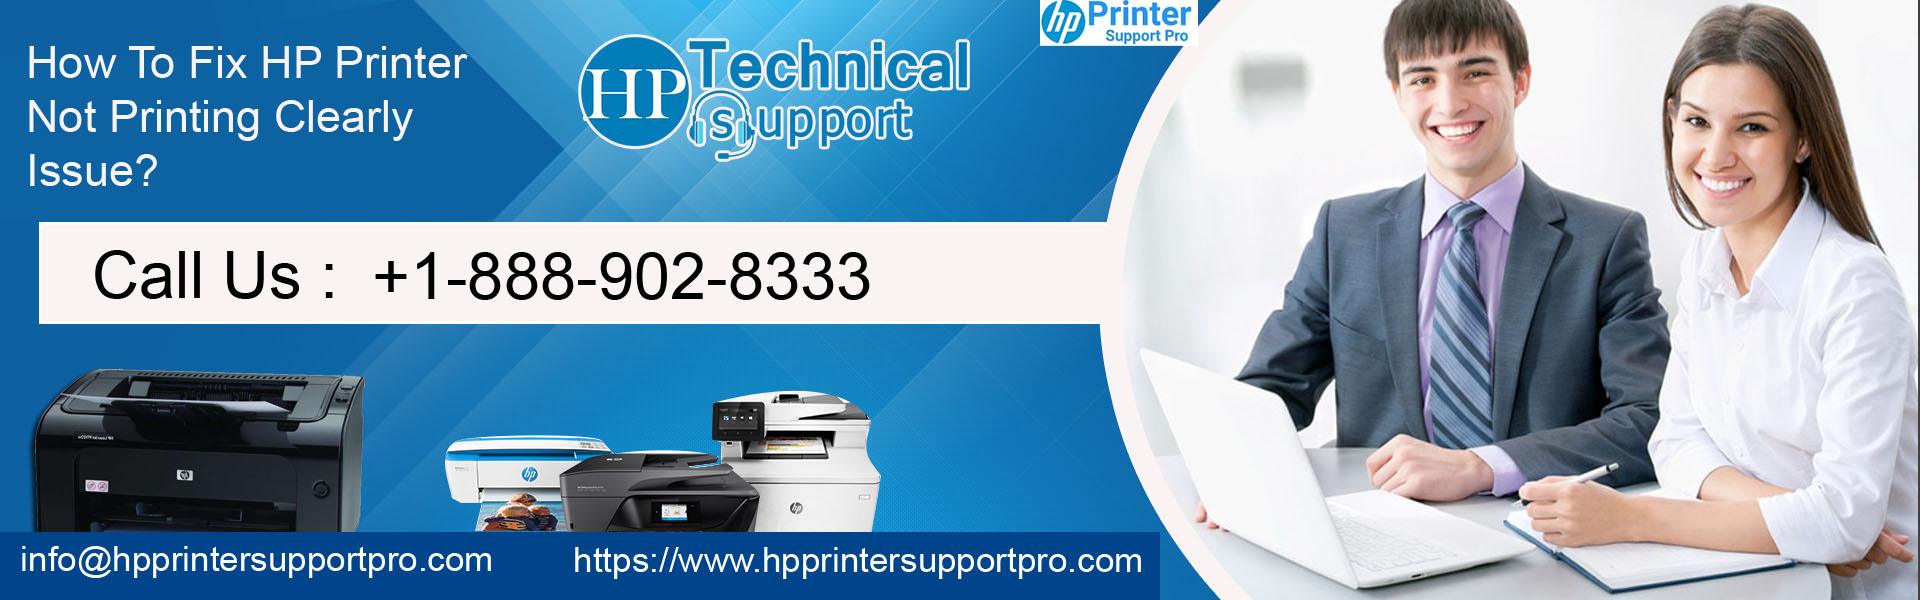 Fix HP Printer Not Printing Clearly Issue, Printer Not Printing